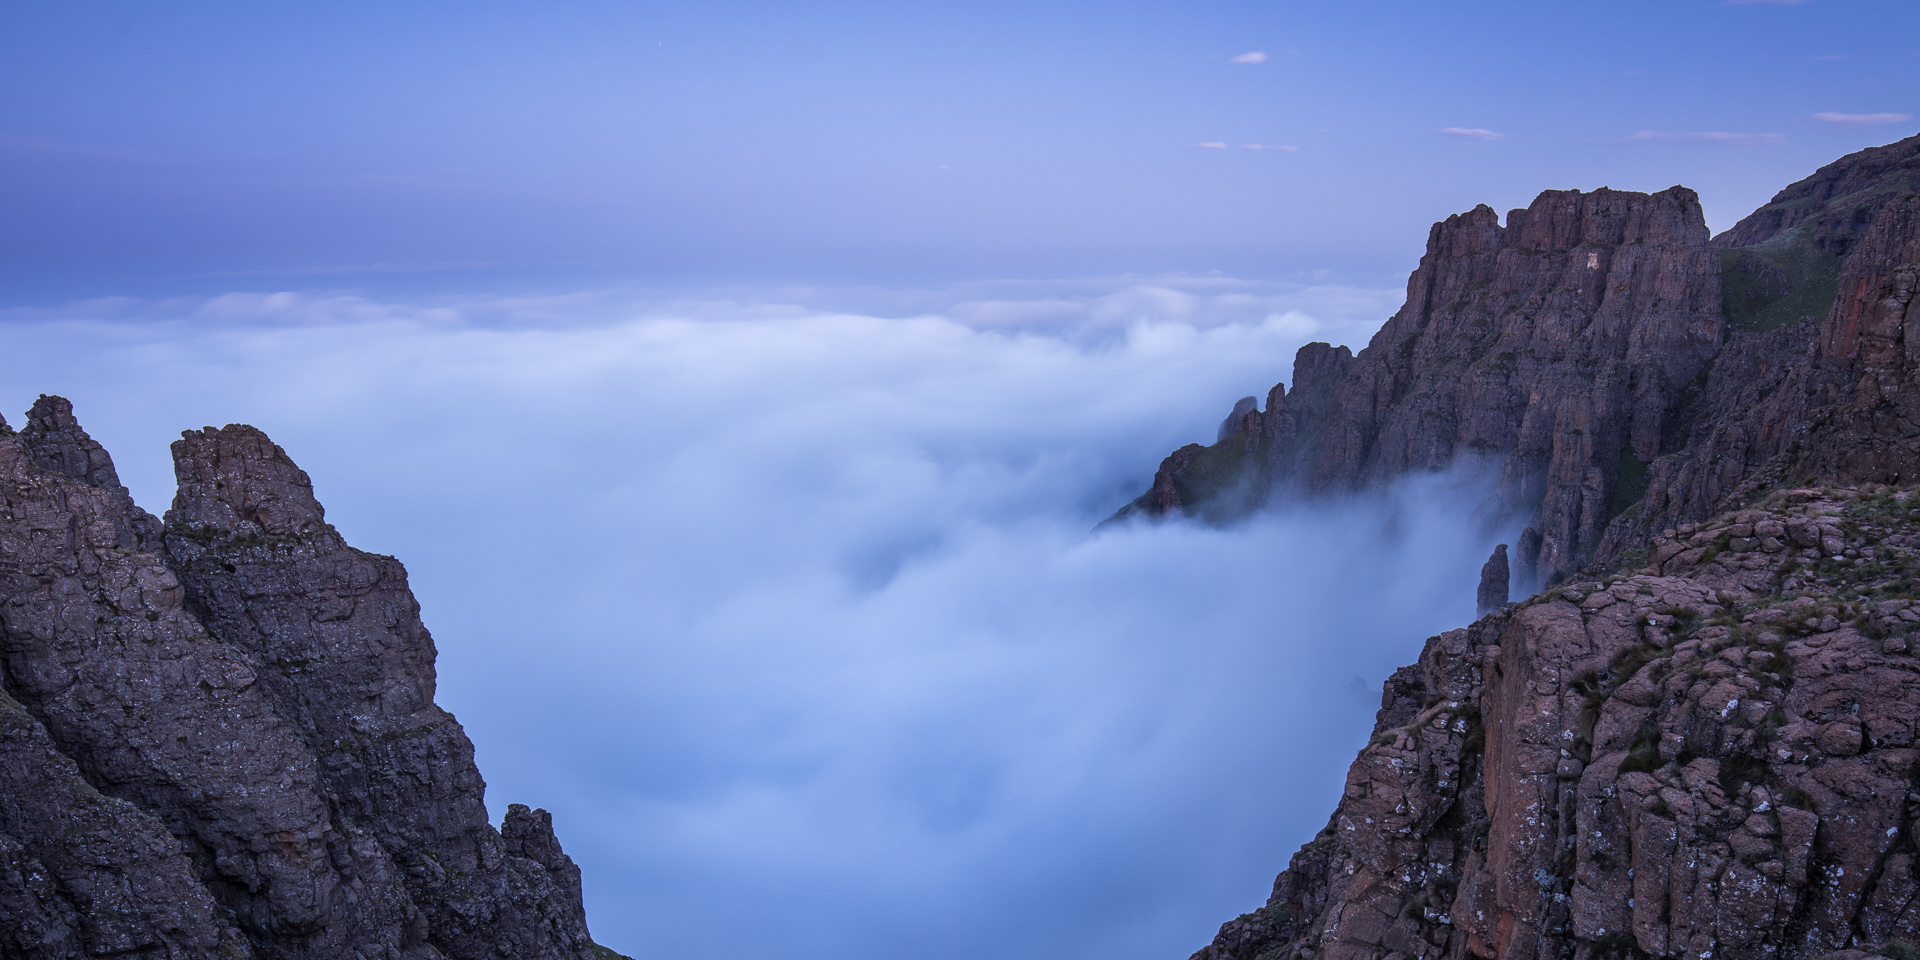 The landforms of the Drakensberg are generally named from below and can seem somewhat confusing from above! The organ pipes are one of the few rock formations where the naming seems to make sense at every angle. This evening inversion appeared from nowhere. An hour earlier the valleys were completely clear.